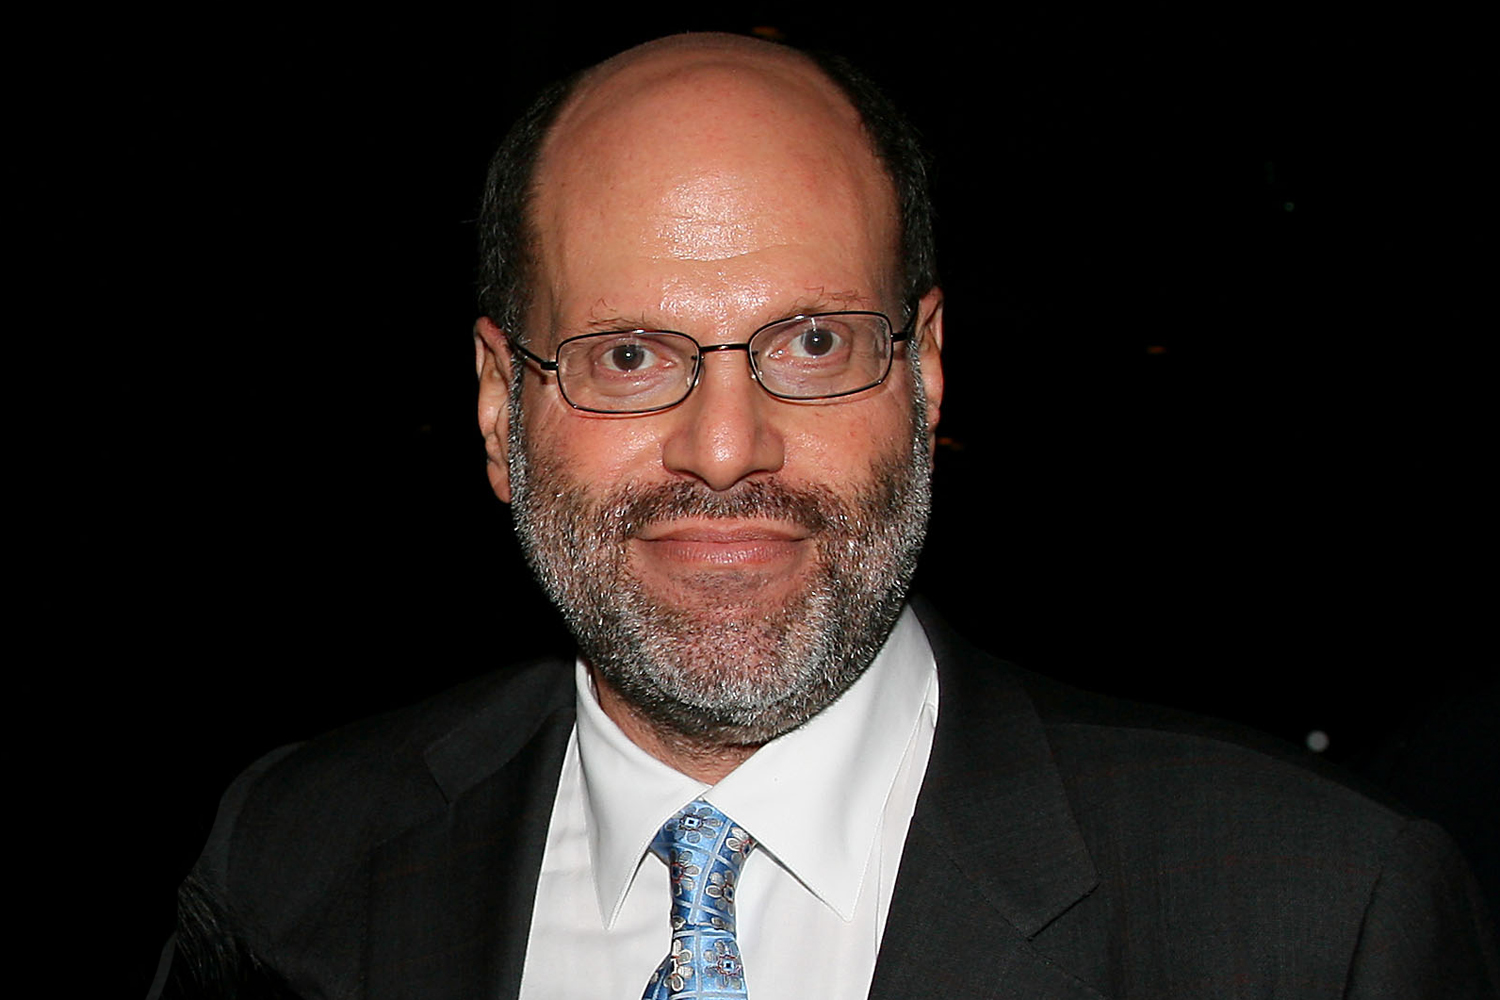 Scott Rudin dit qu'il prendra du `` recul '' de Broadway Productions au milieu d'allégations de comportement abusif